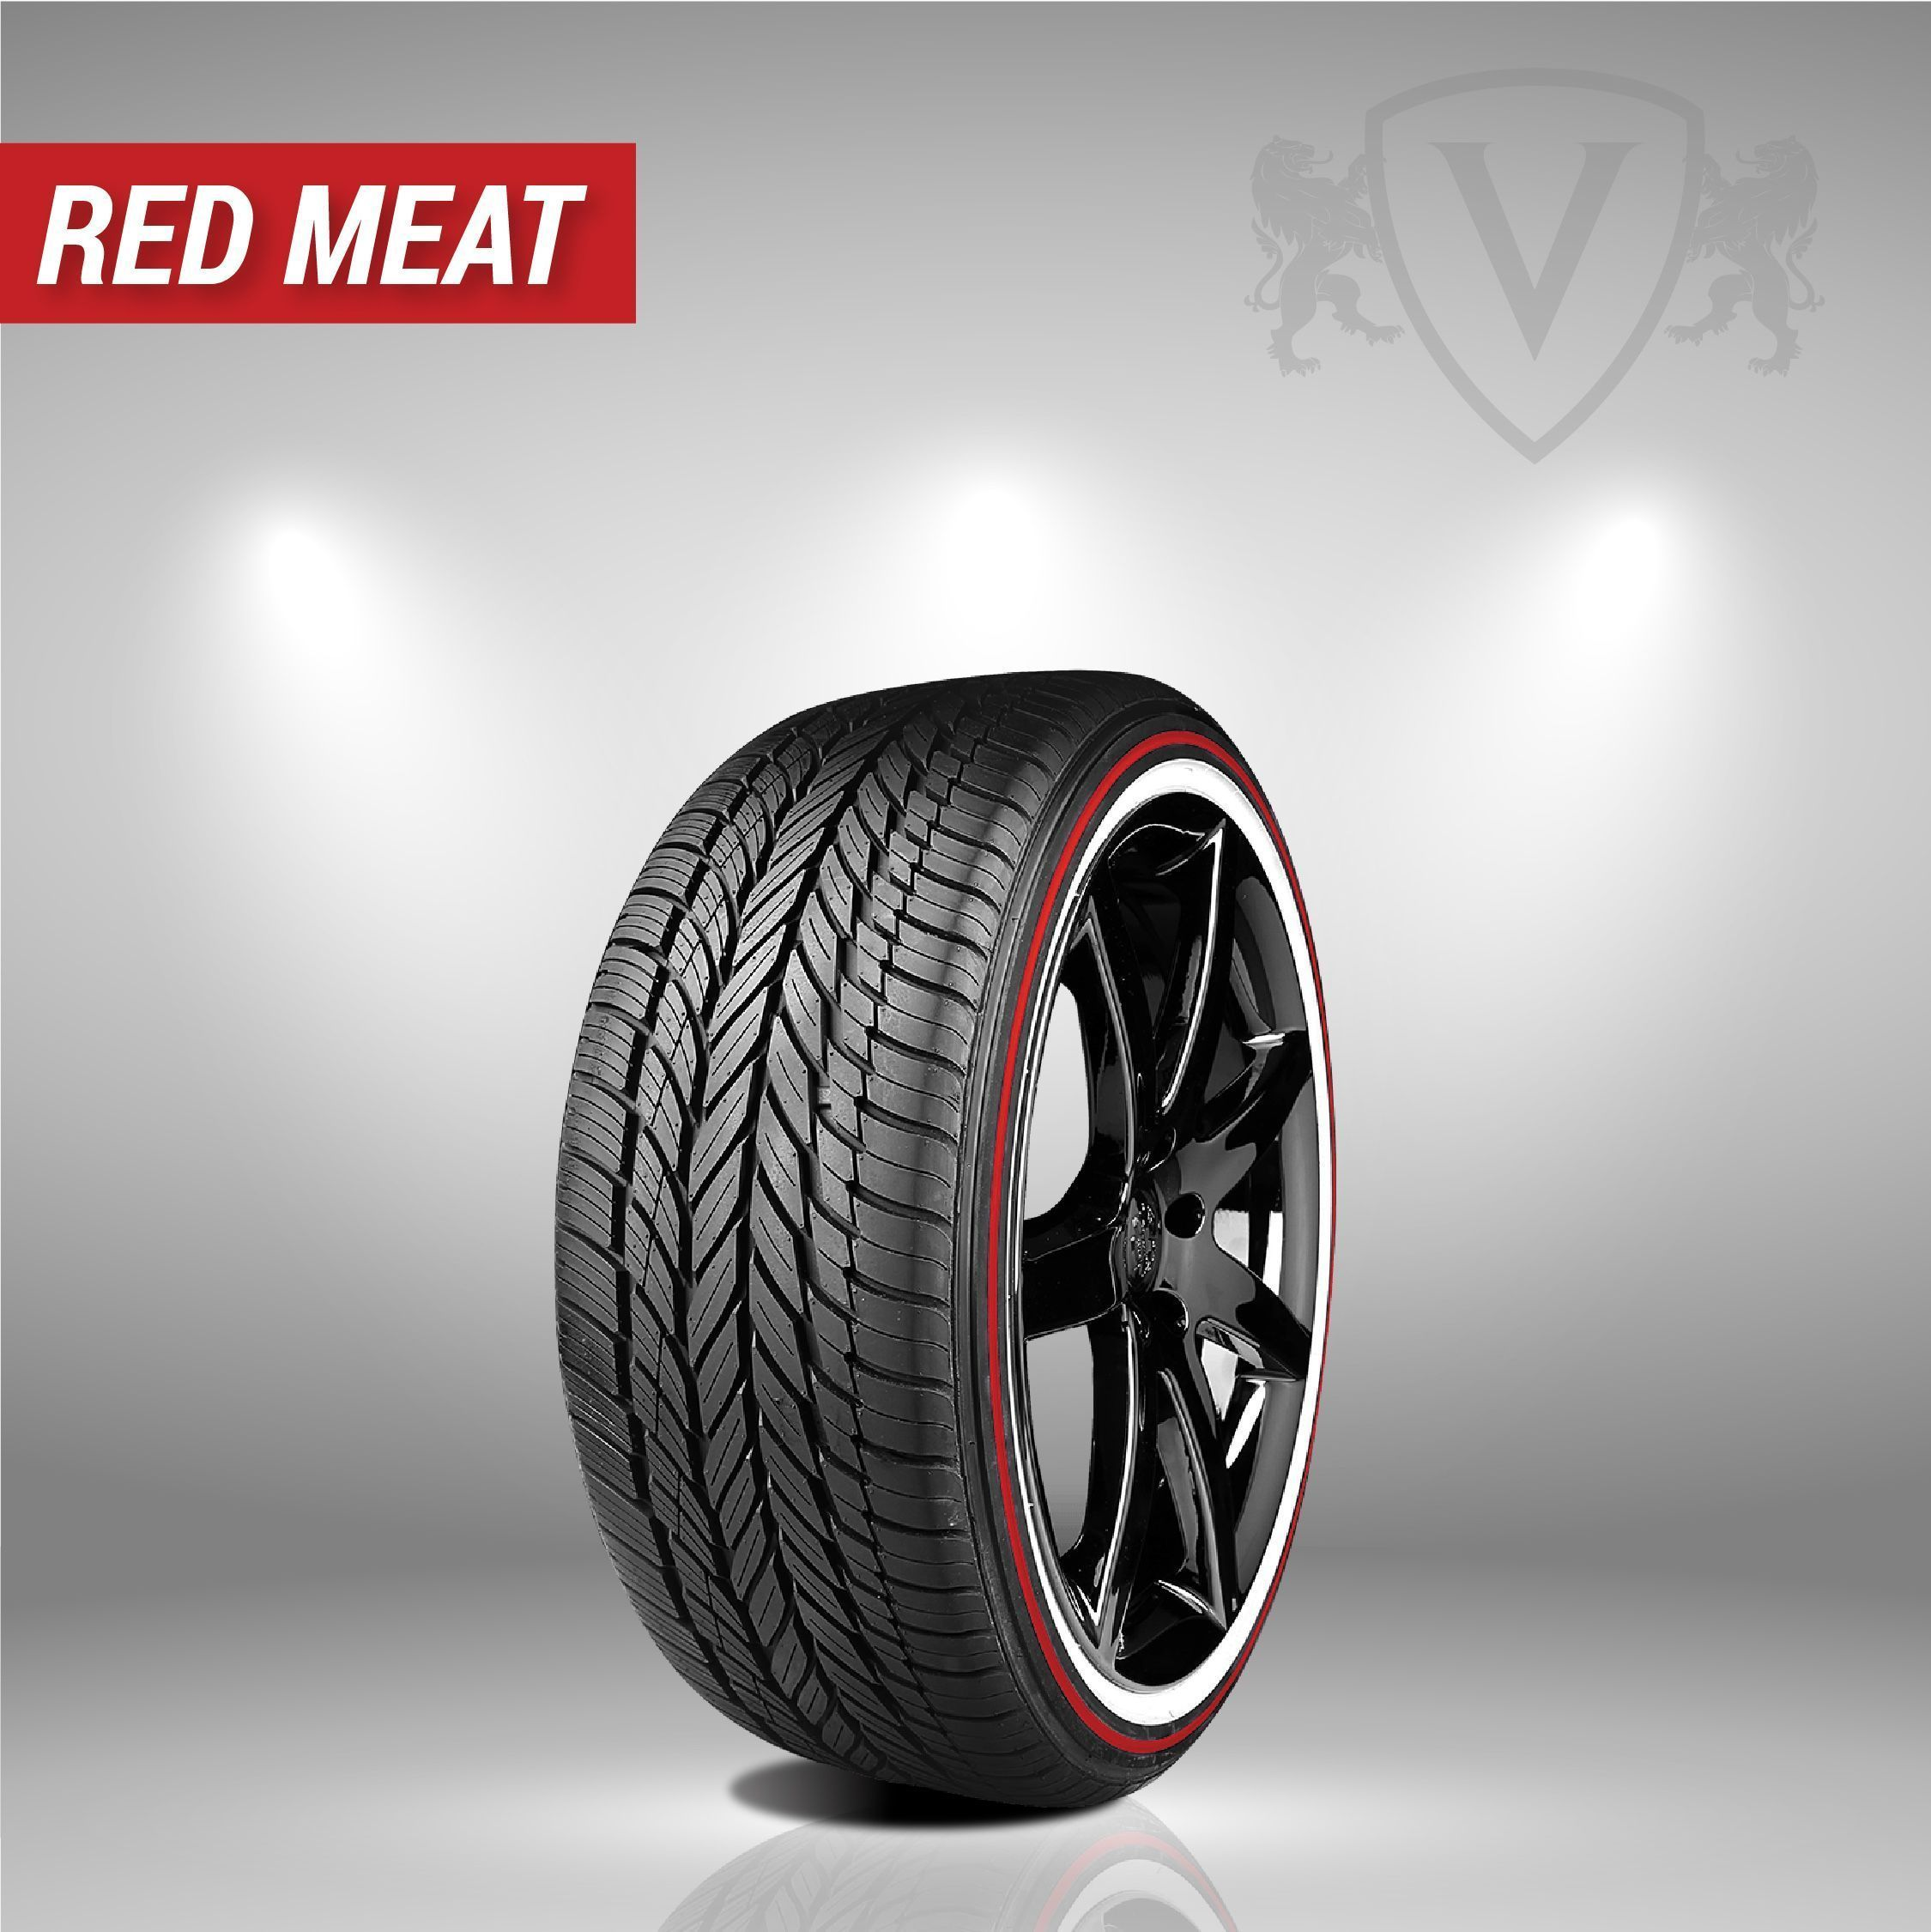 The Vogue Red Stripe Now Available In Sizes 235 55r17 245 40r20 285 45r22 Please Contact Your Closest Vogue Tyre Retailer T In 2020 Red Stripe Red Tire